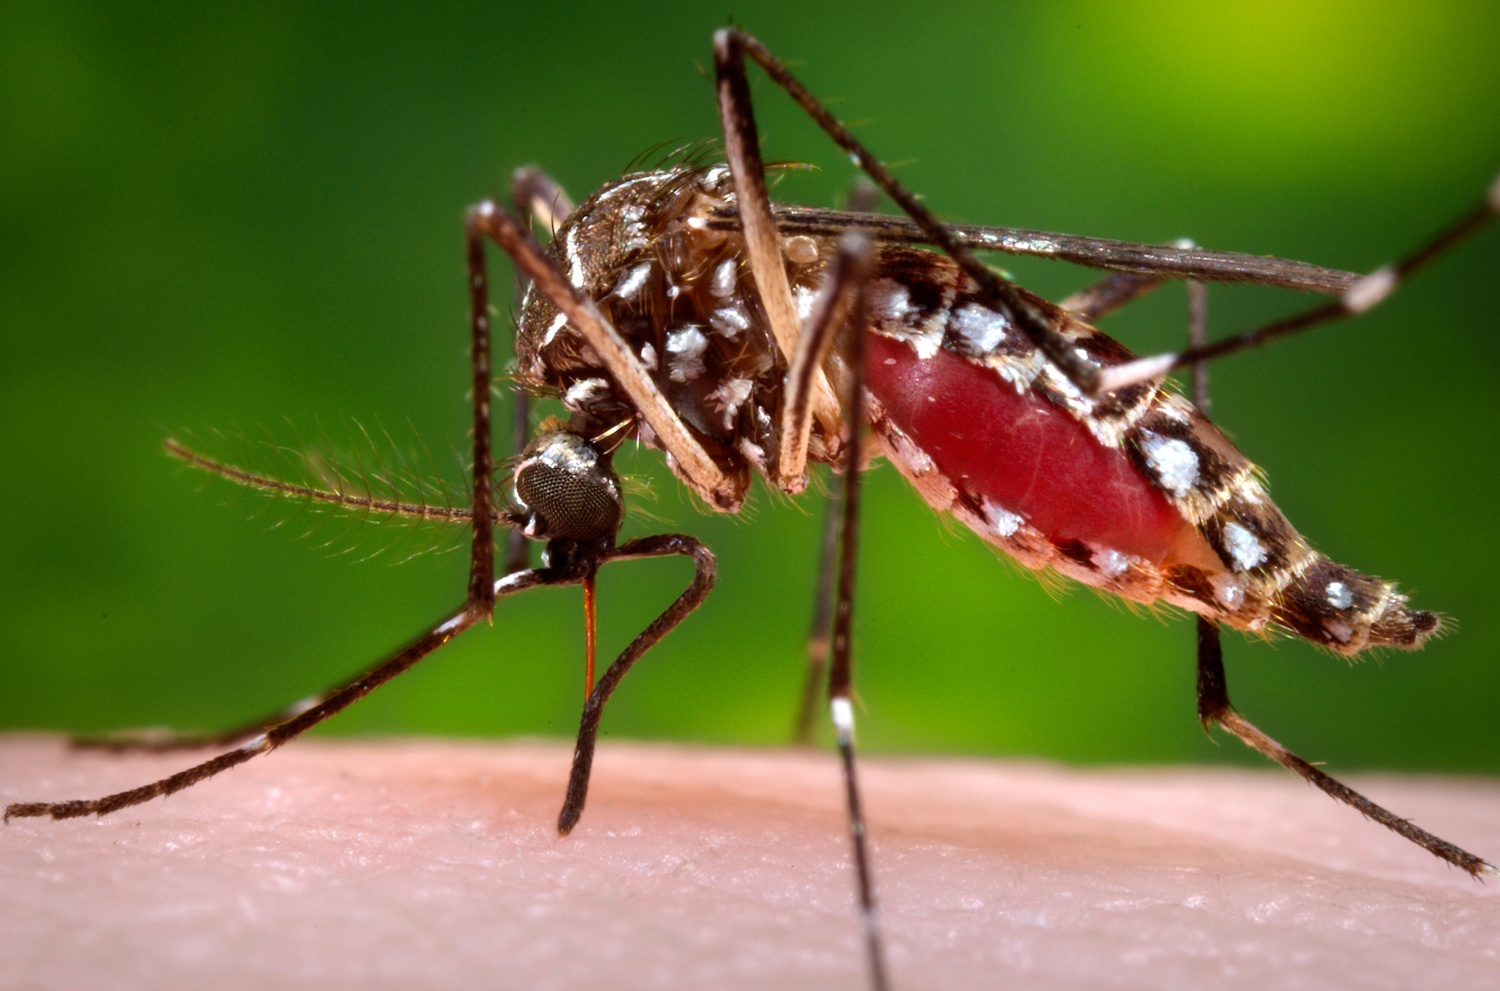 A female Aedes aegypti mosquito. Photo by James Gathany/CDC